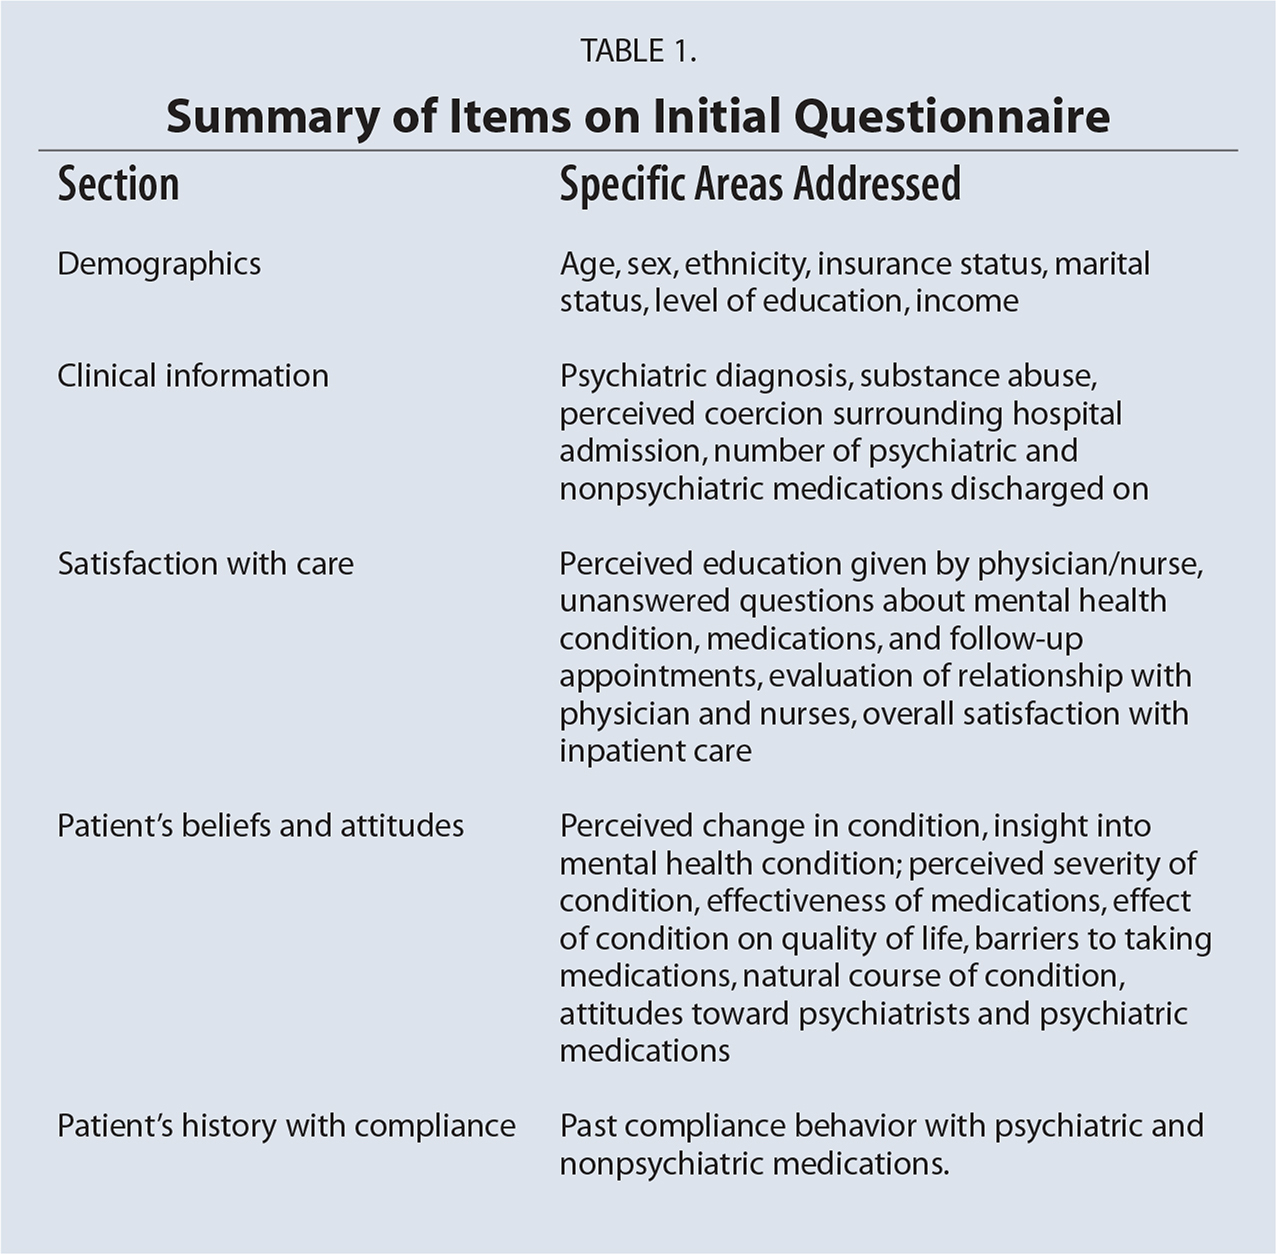 Summary of Items on Initial Questionnaire